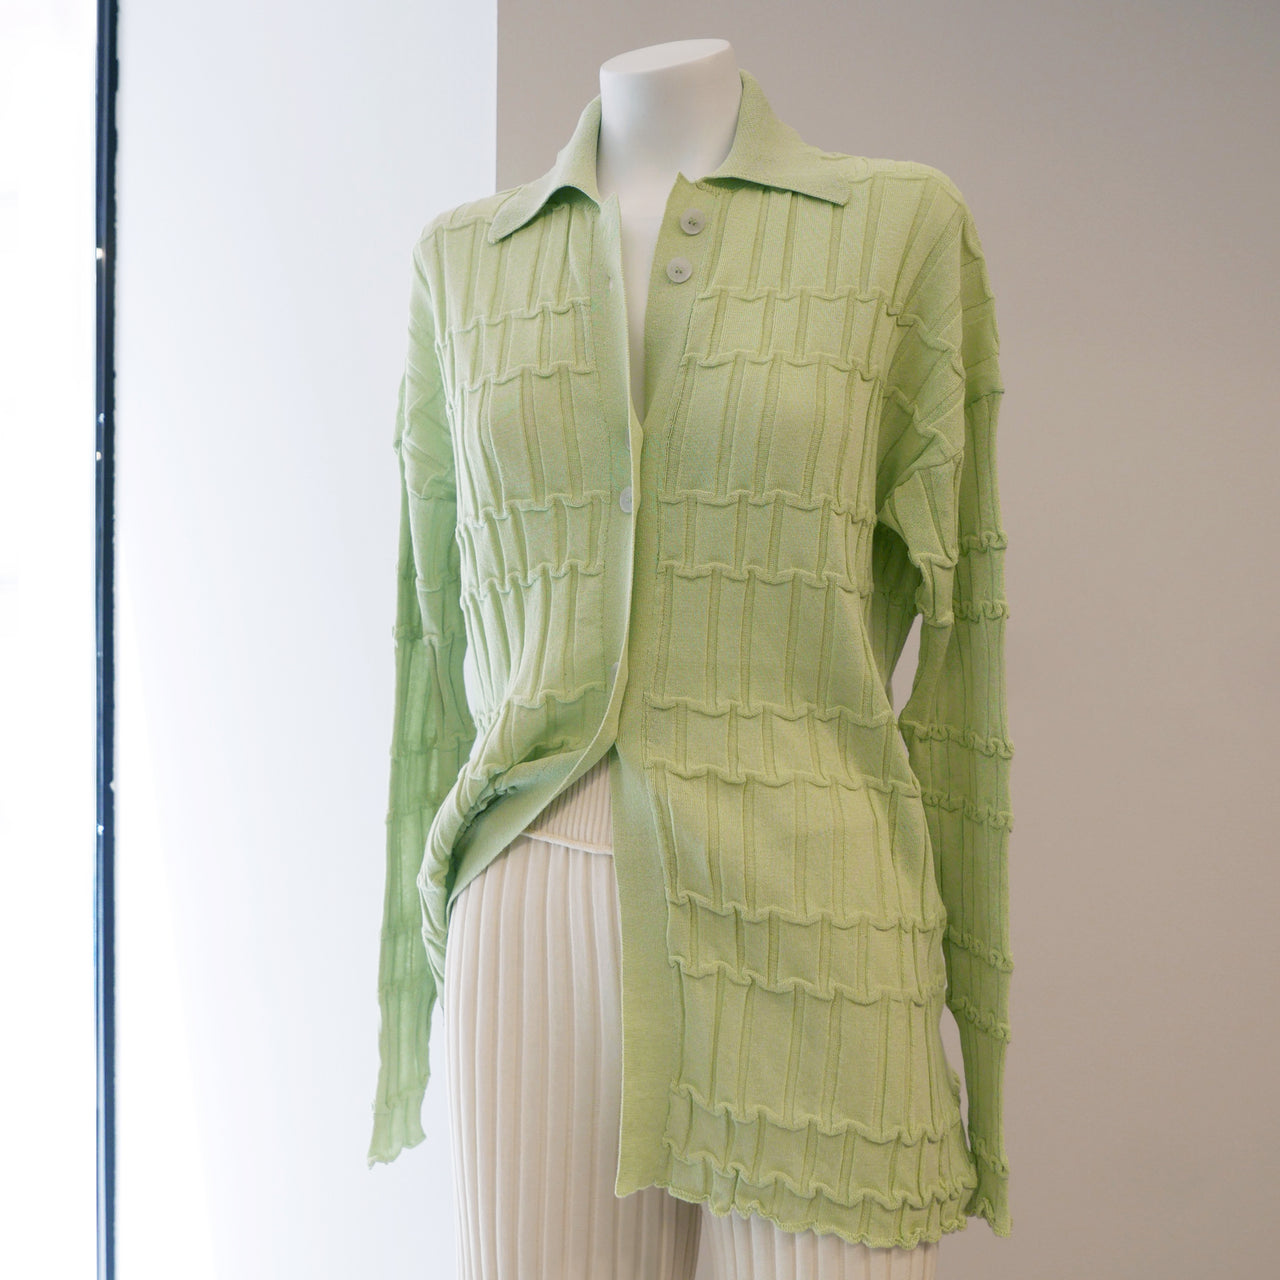 Reflet Knit Shirt in Pale Green